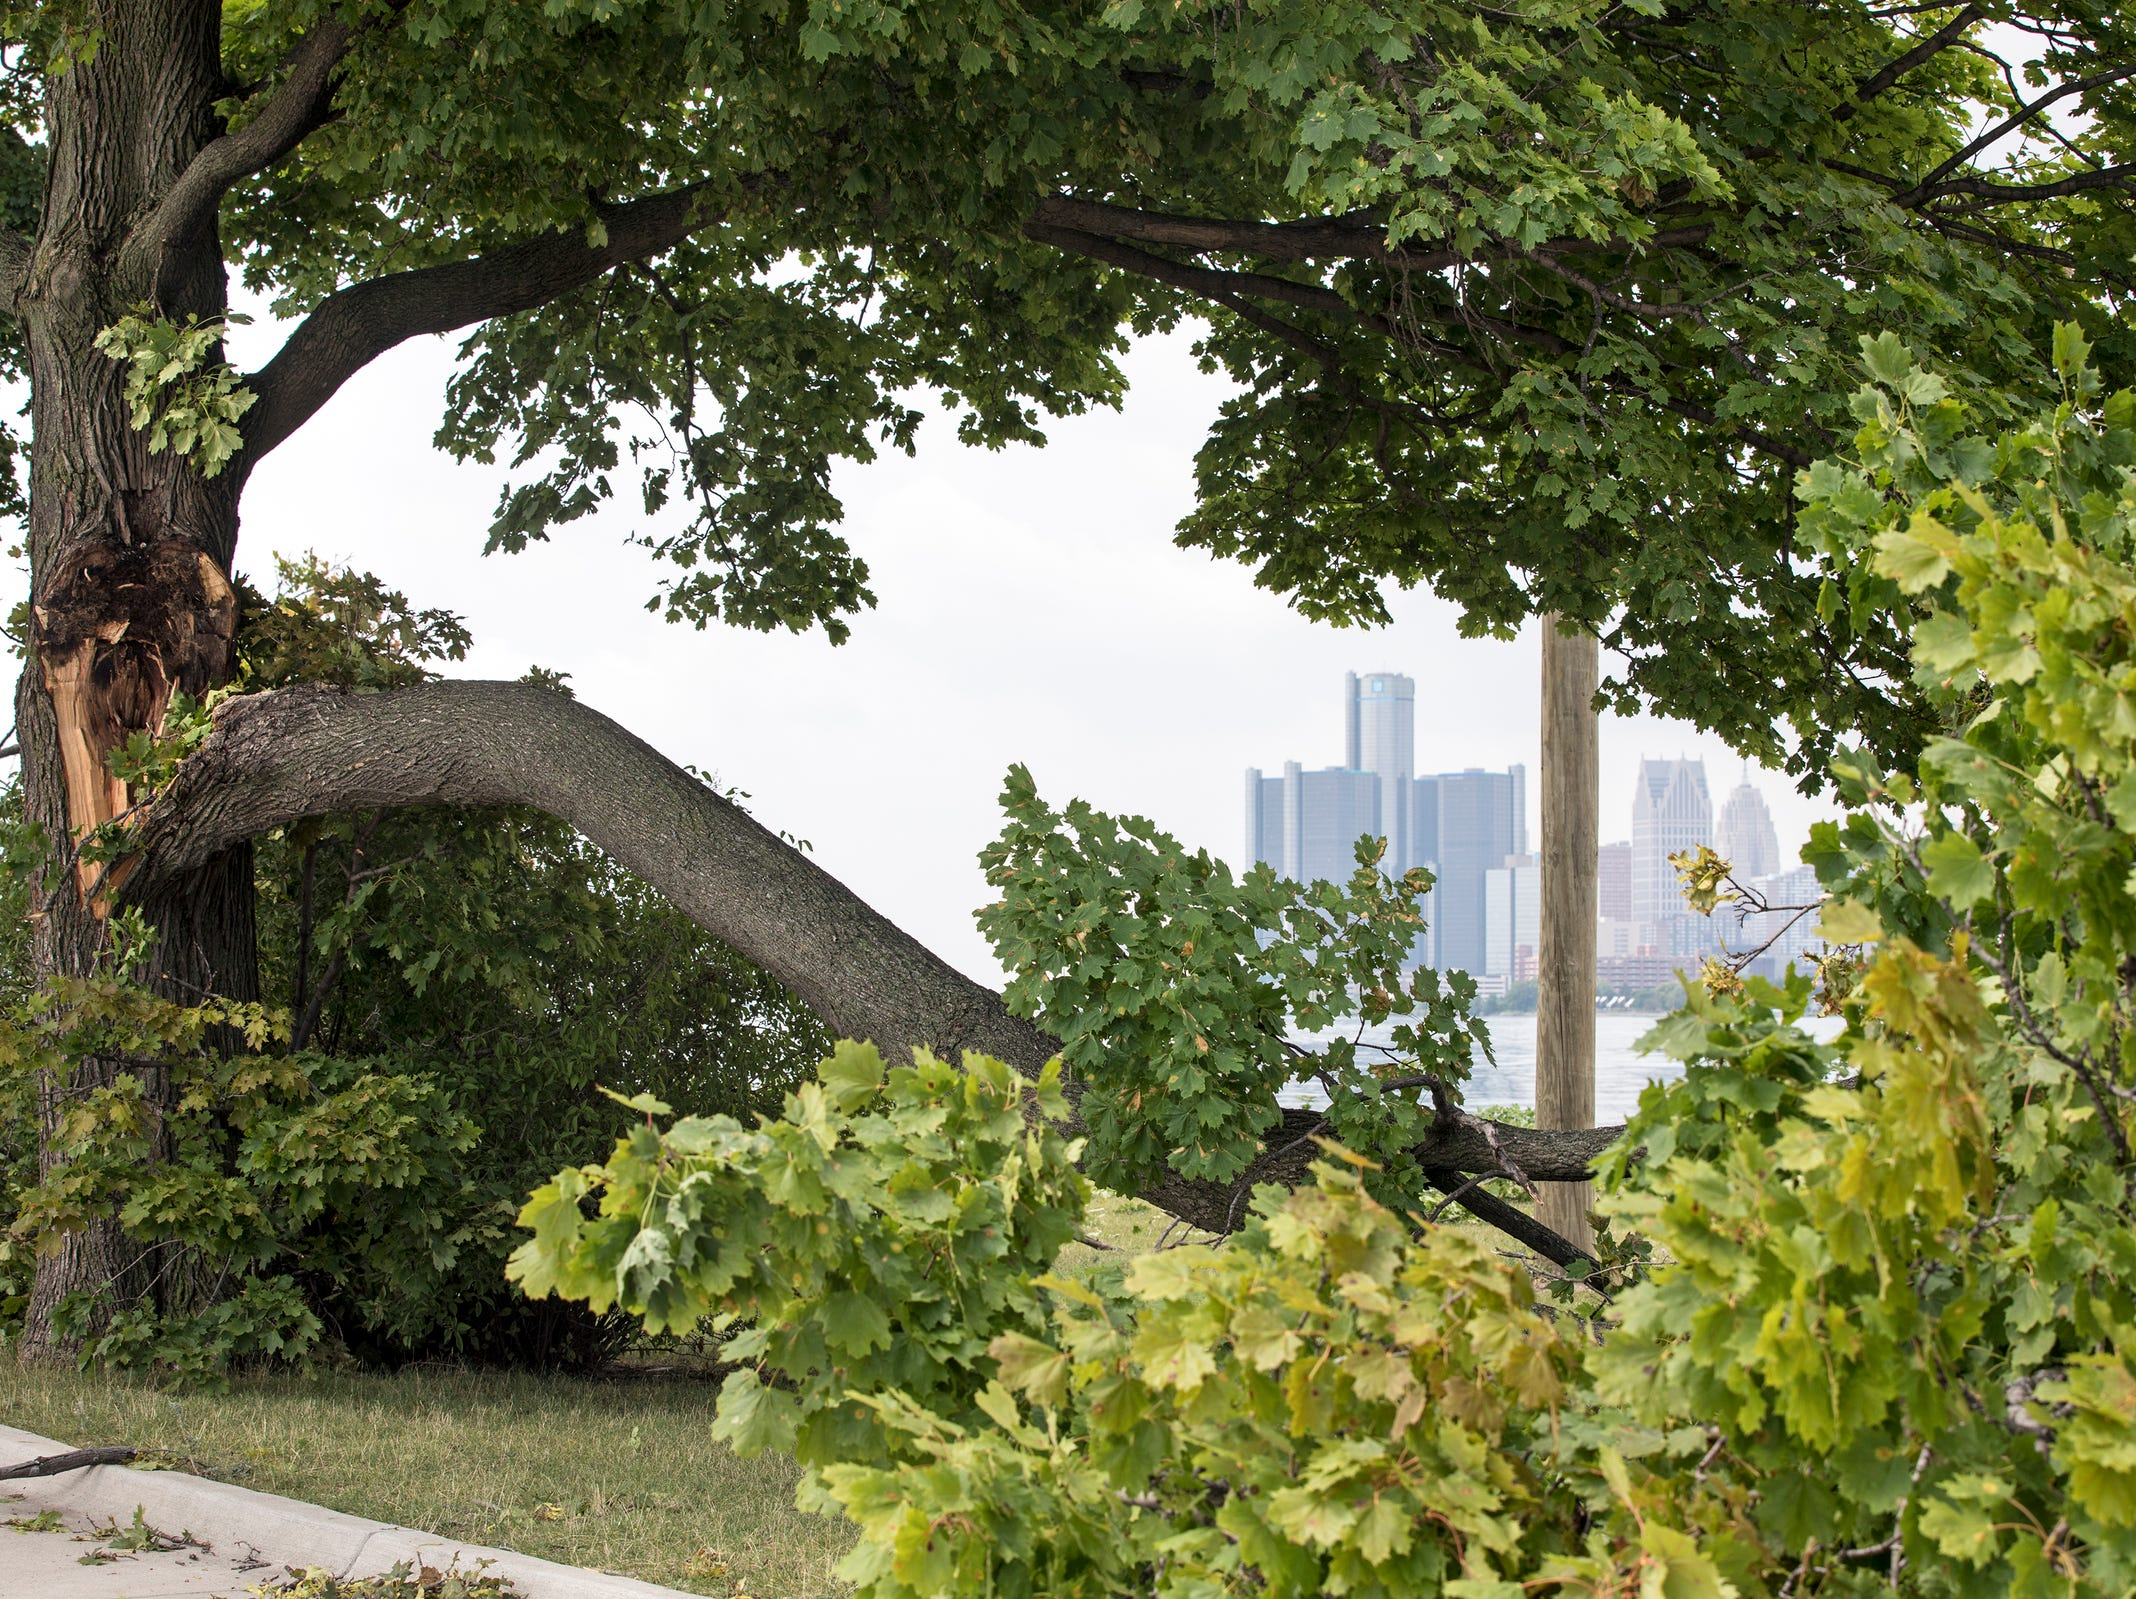 A damaged tree frames a city view on Belle Isle in Detroit, Mich., Tuesday, August 7, 2018.